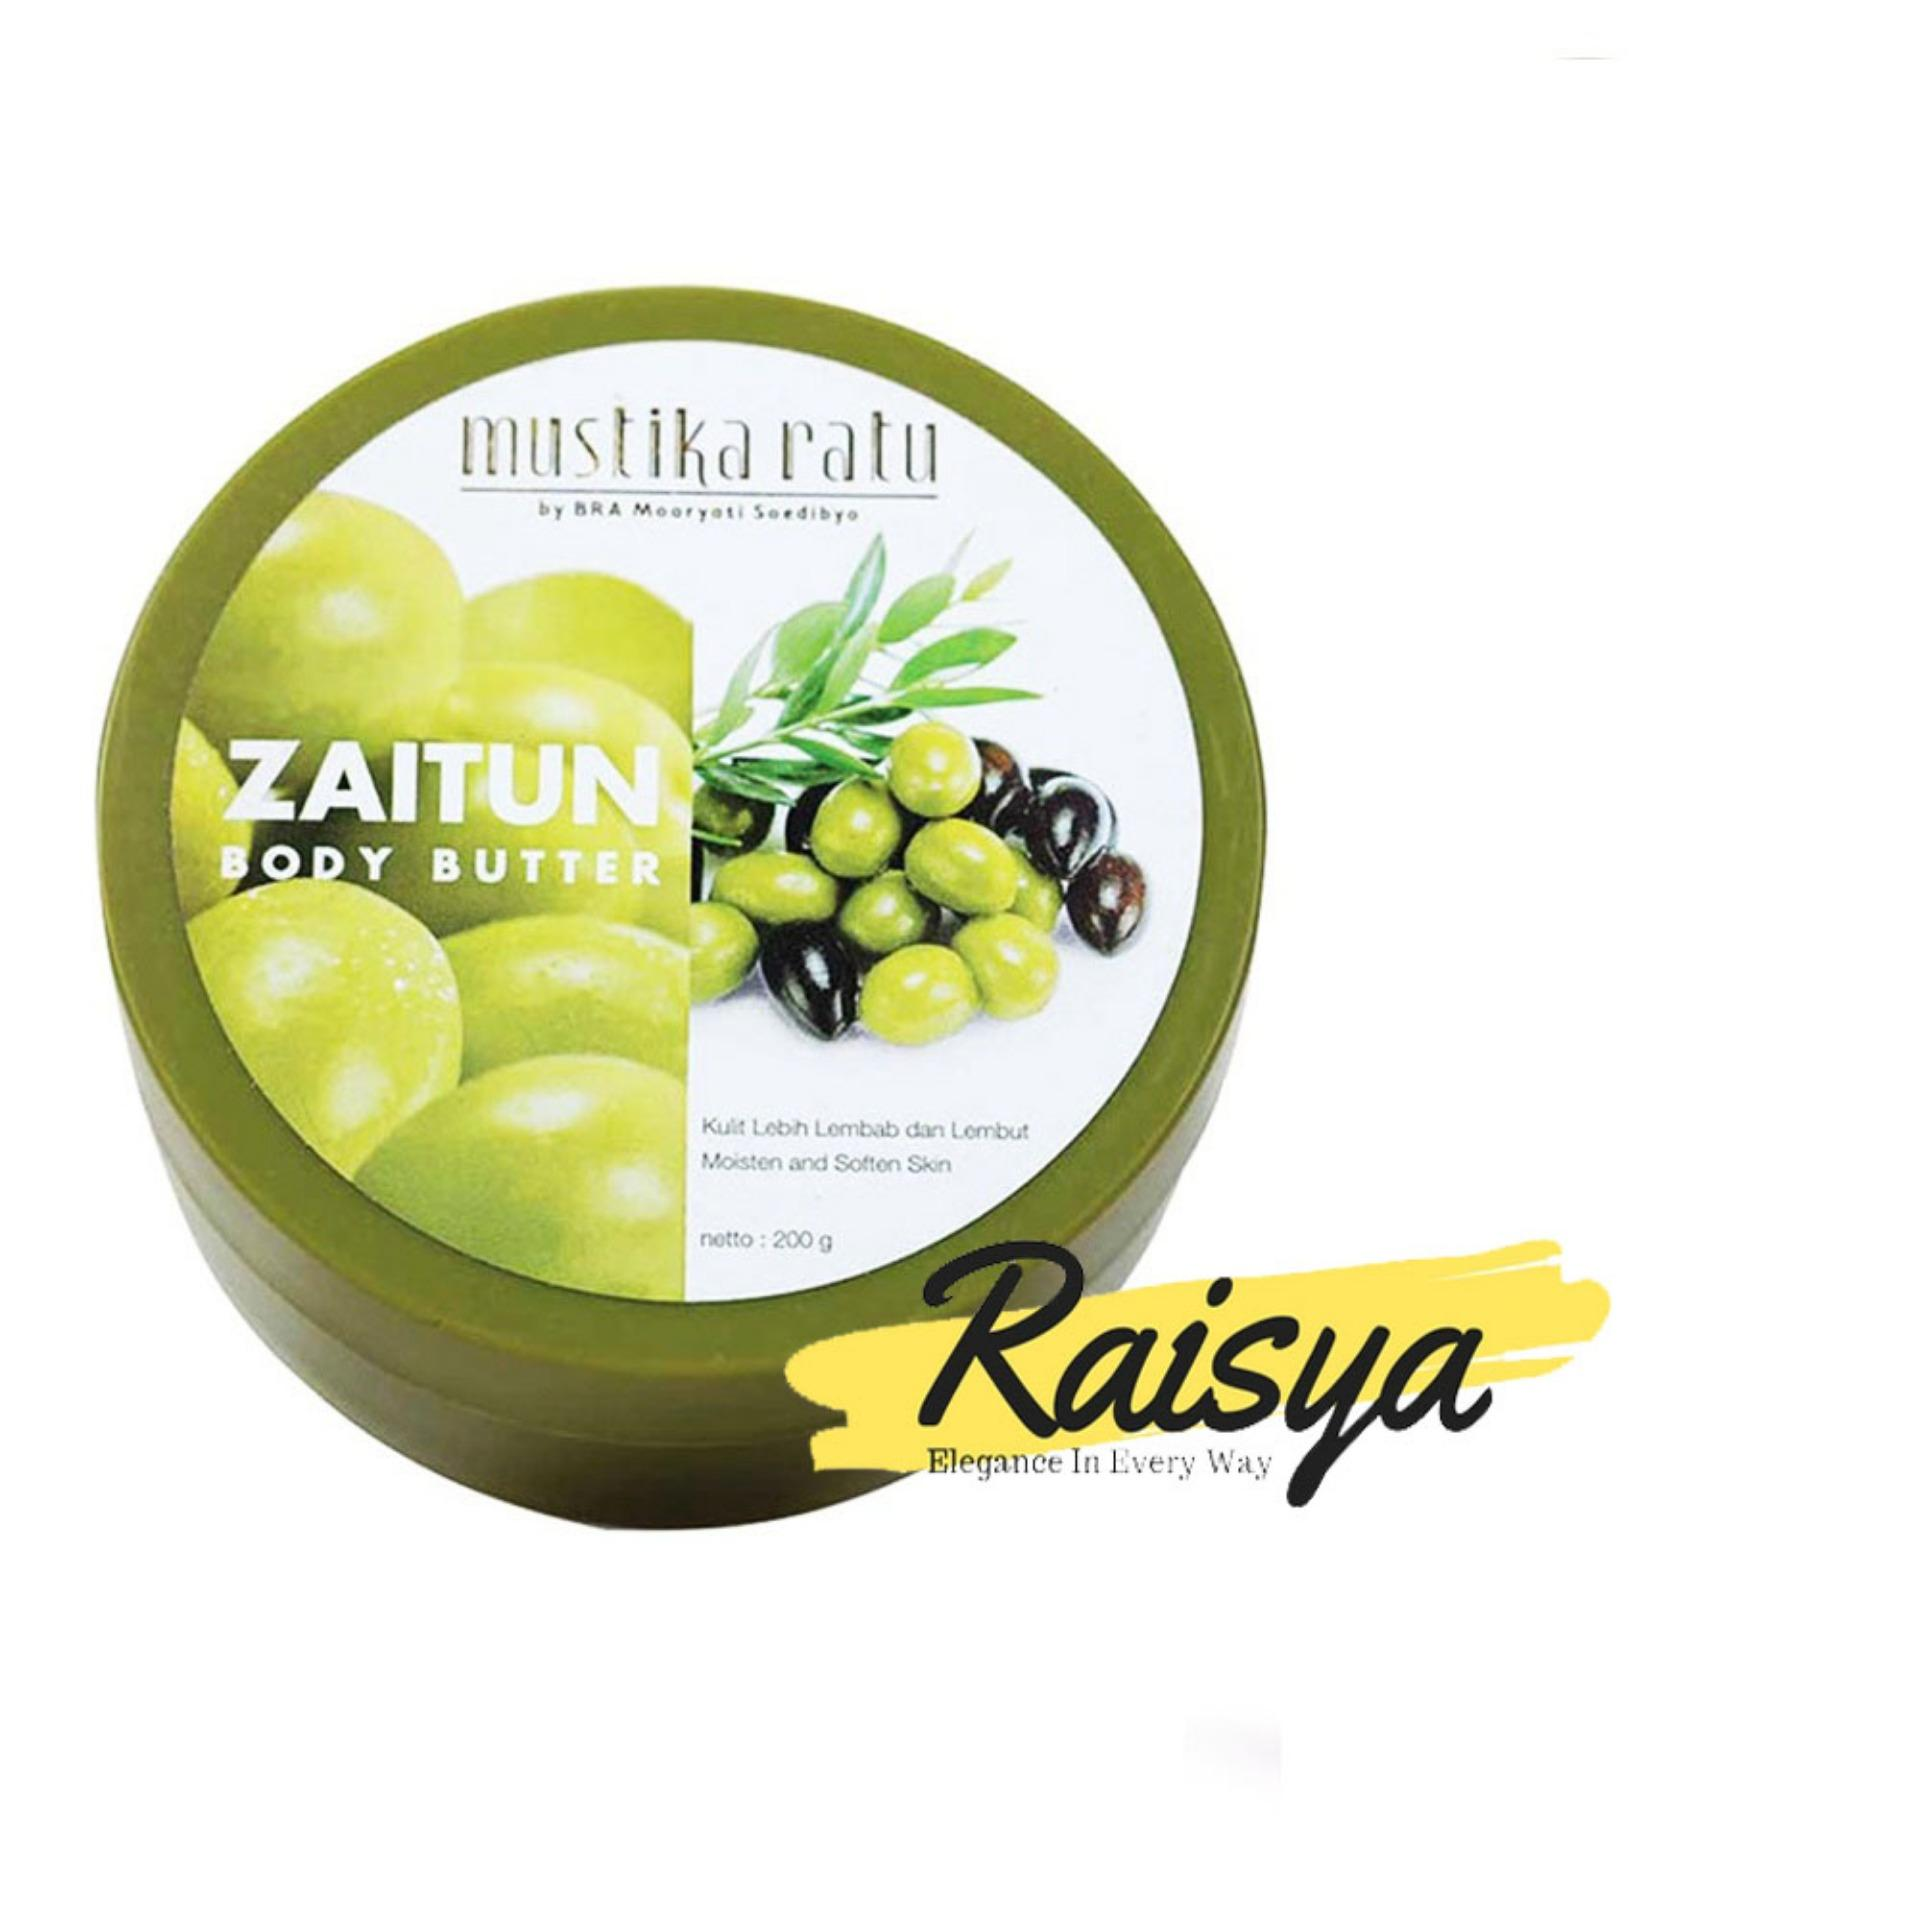 Mustika Ratu Body Butter Olive Oil Zaitun 200gr - Original